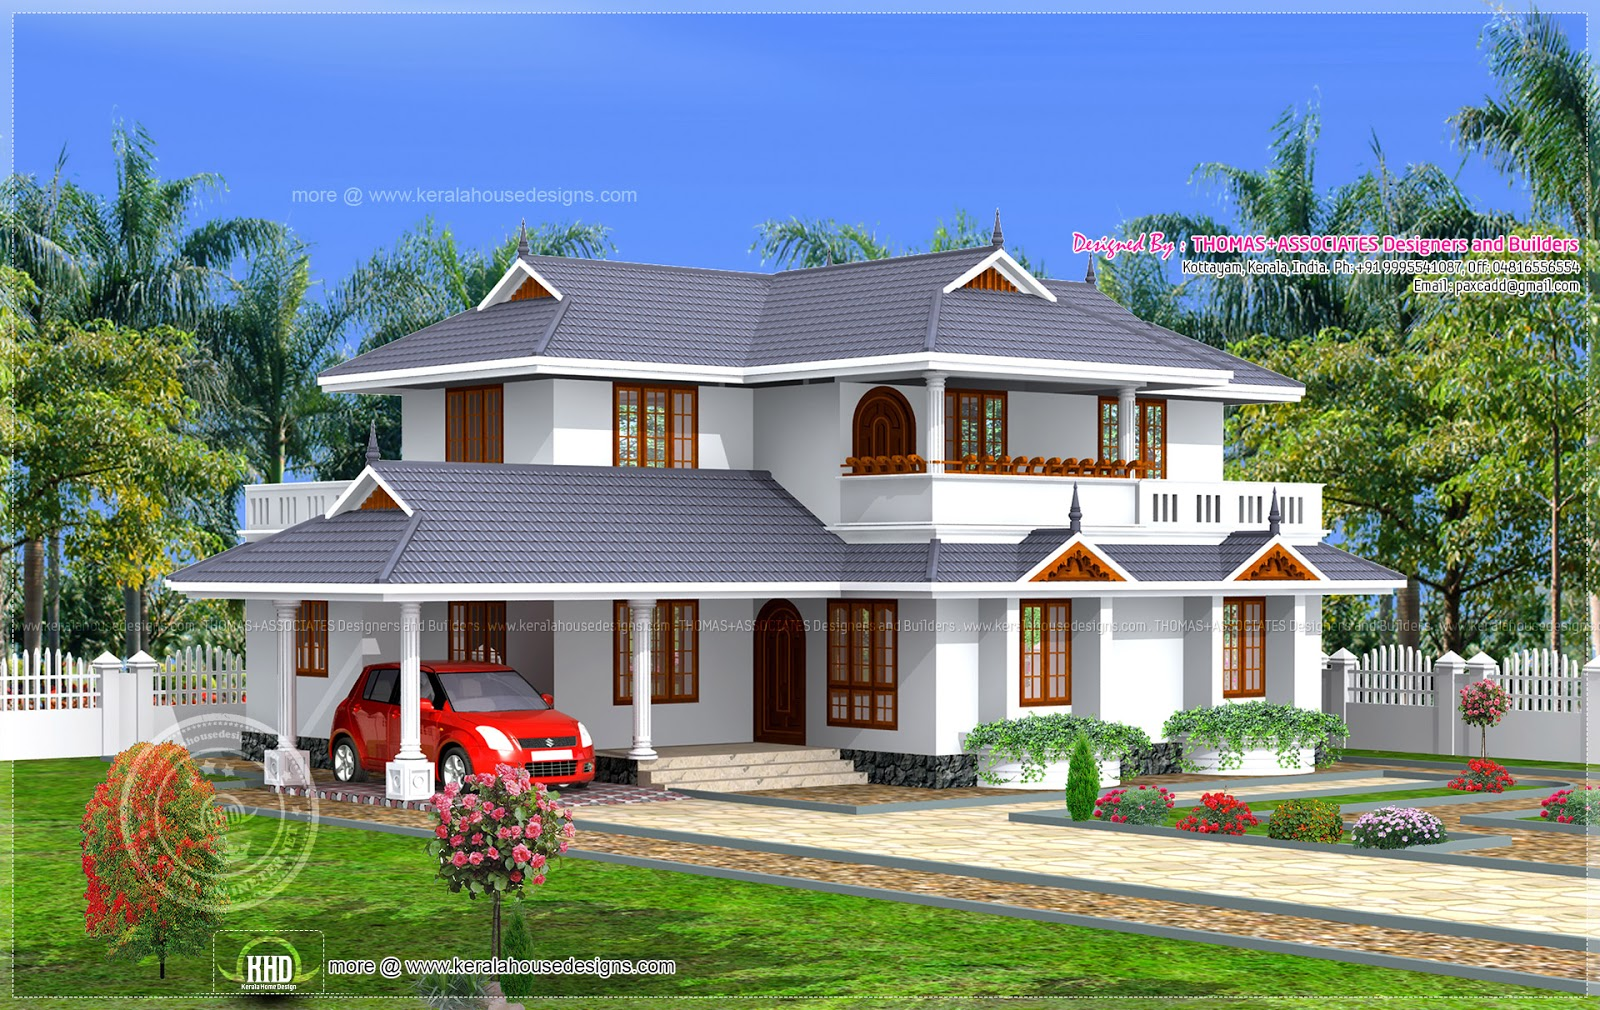 House plans and design house plans in kerala model for Kerala house models and plans